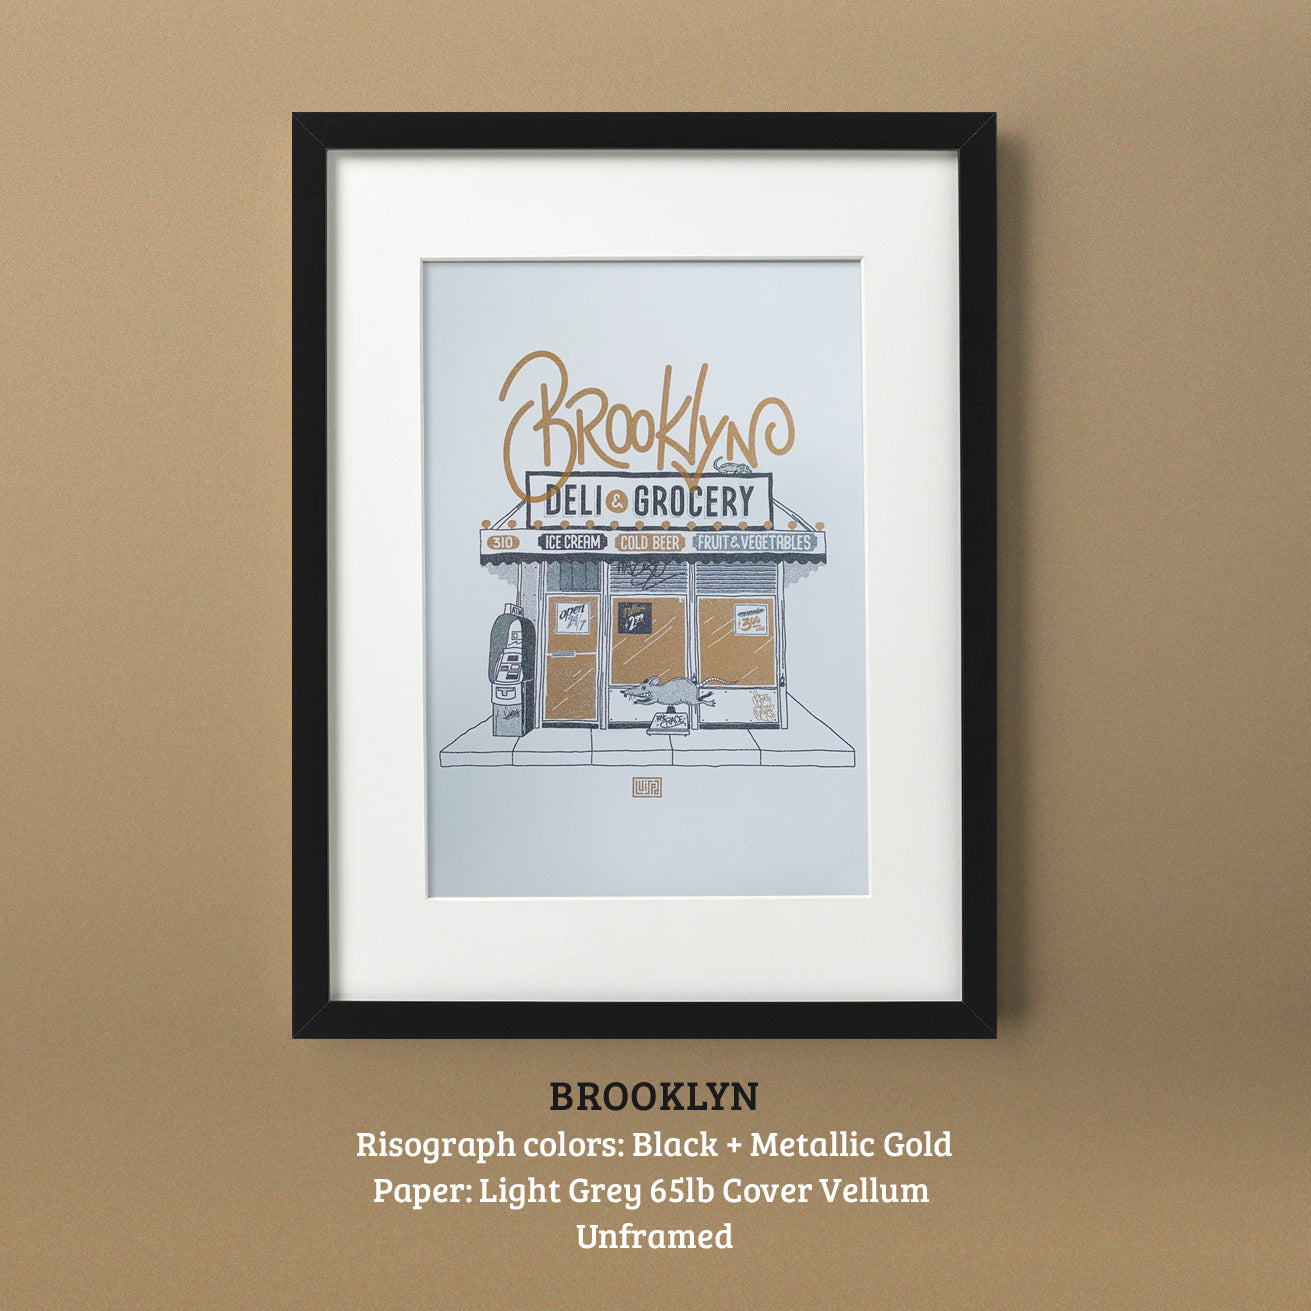 Brooklyn Risograph Print by Lulab